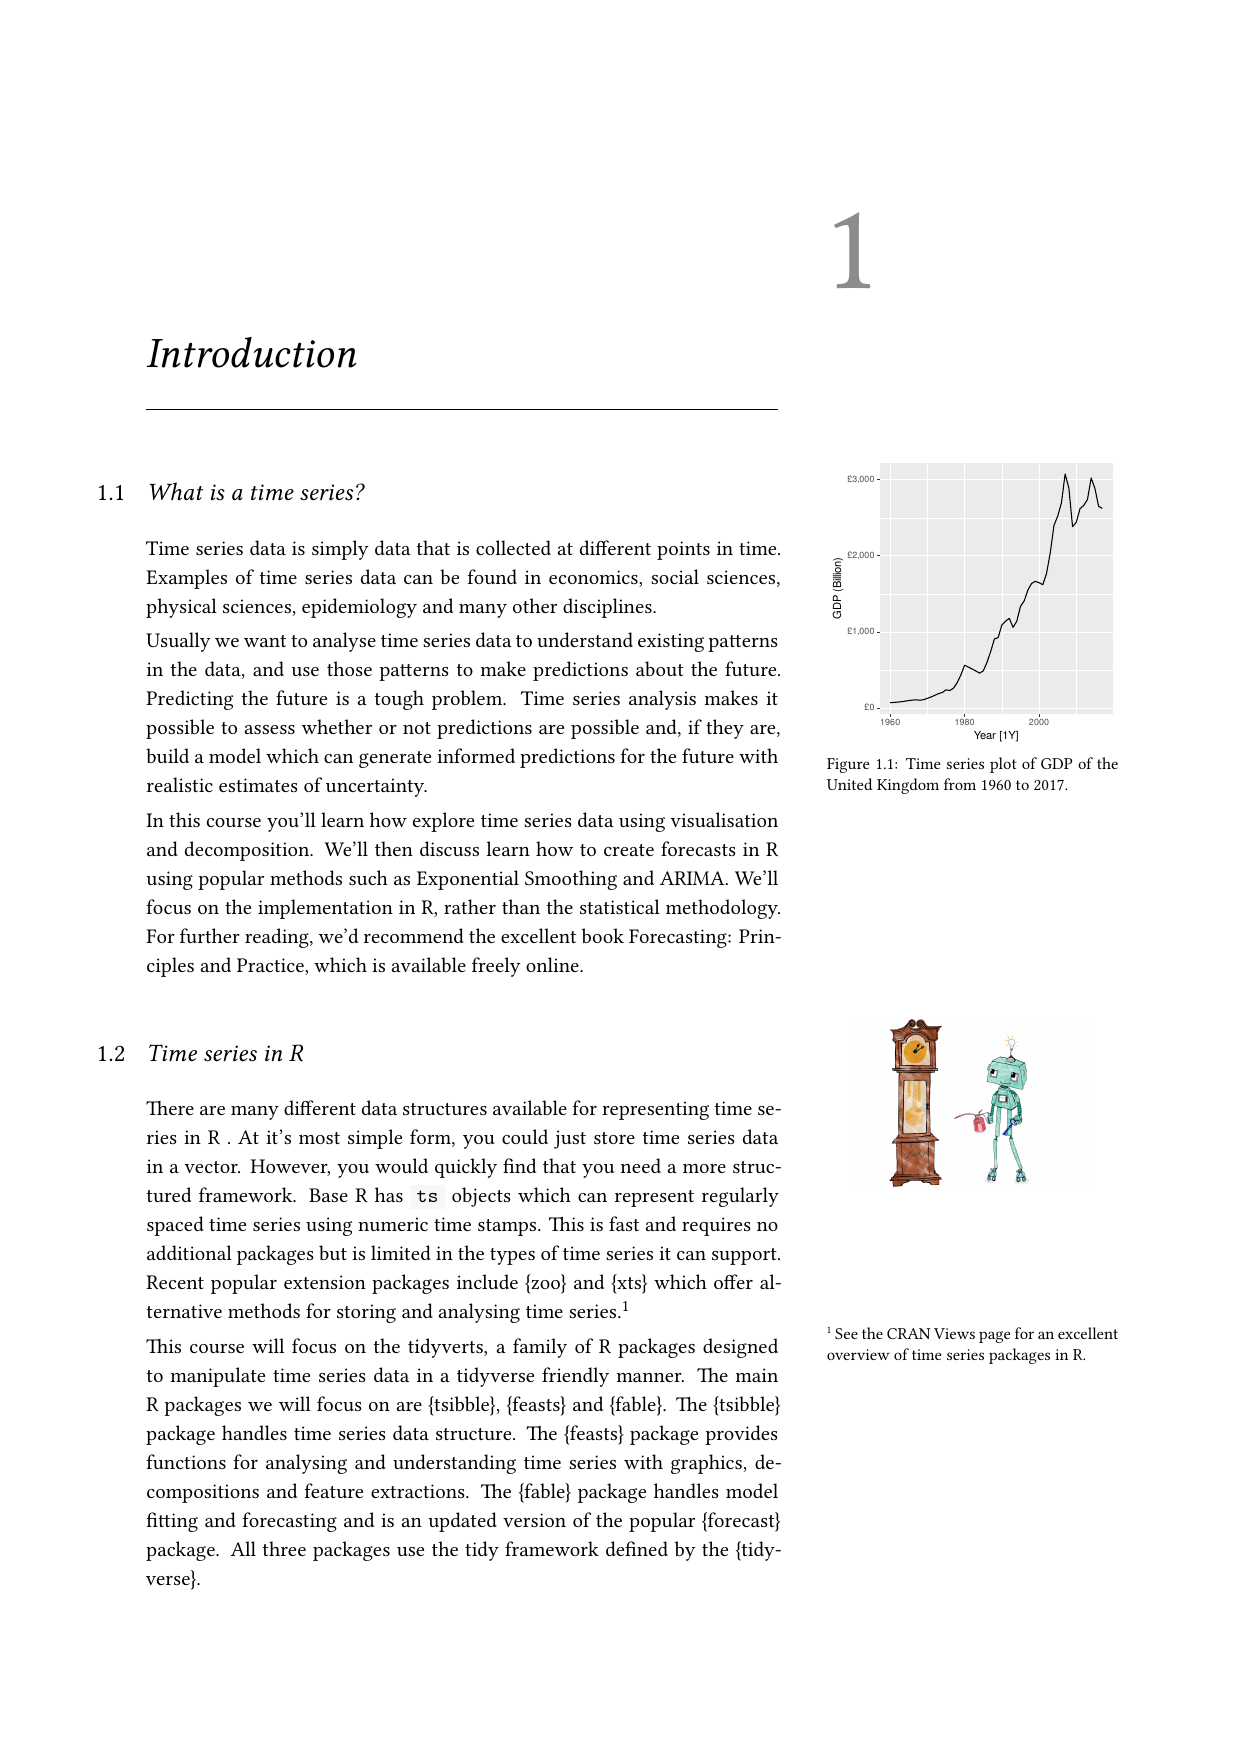 Example course material for 'Time Series Analysis with R